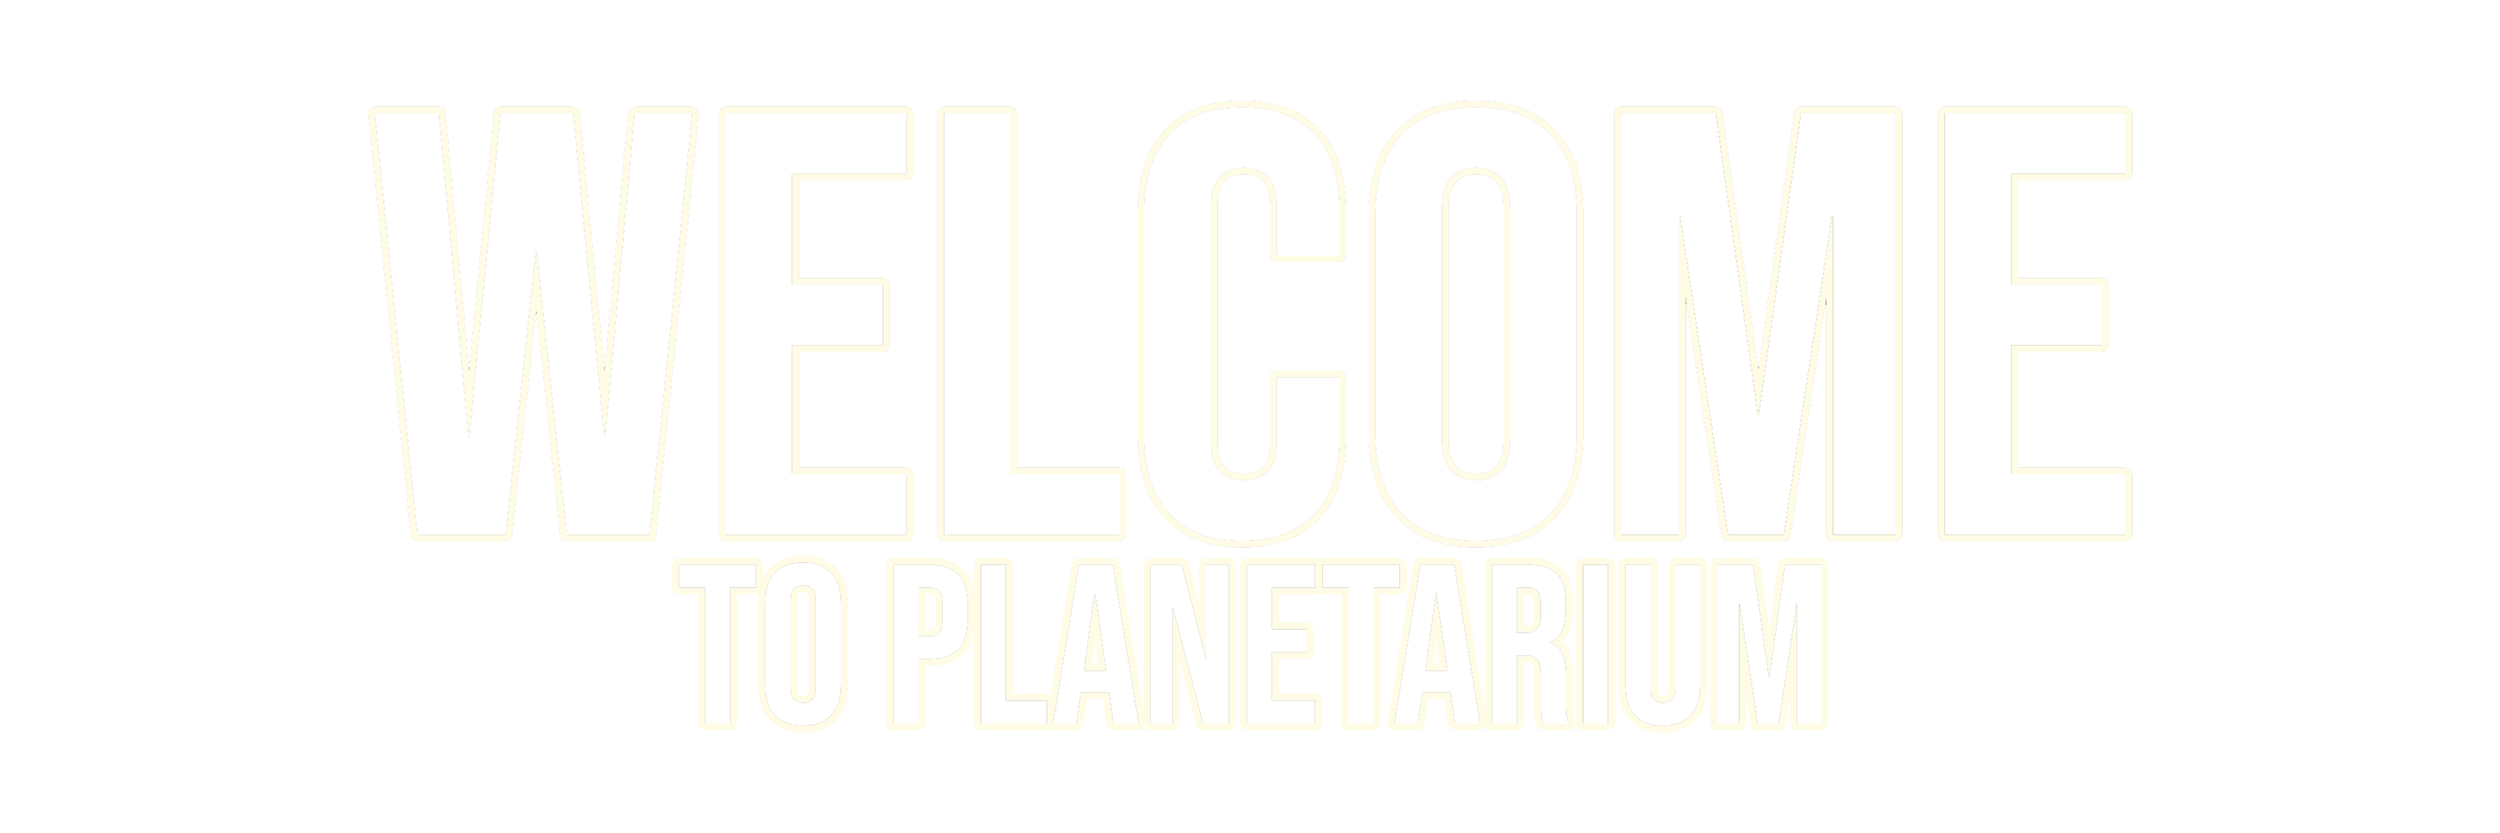 welcome to planetarium.png